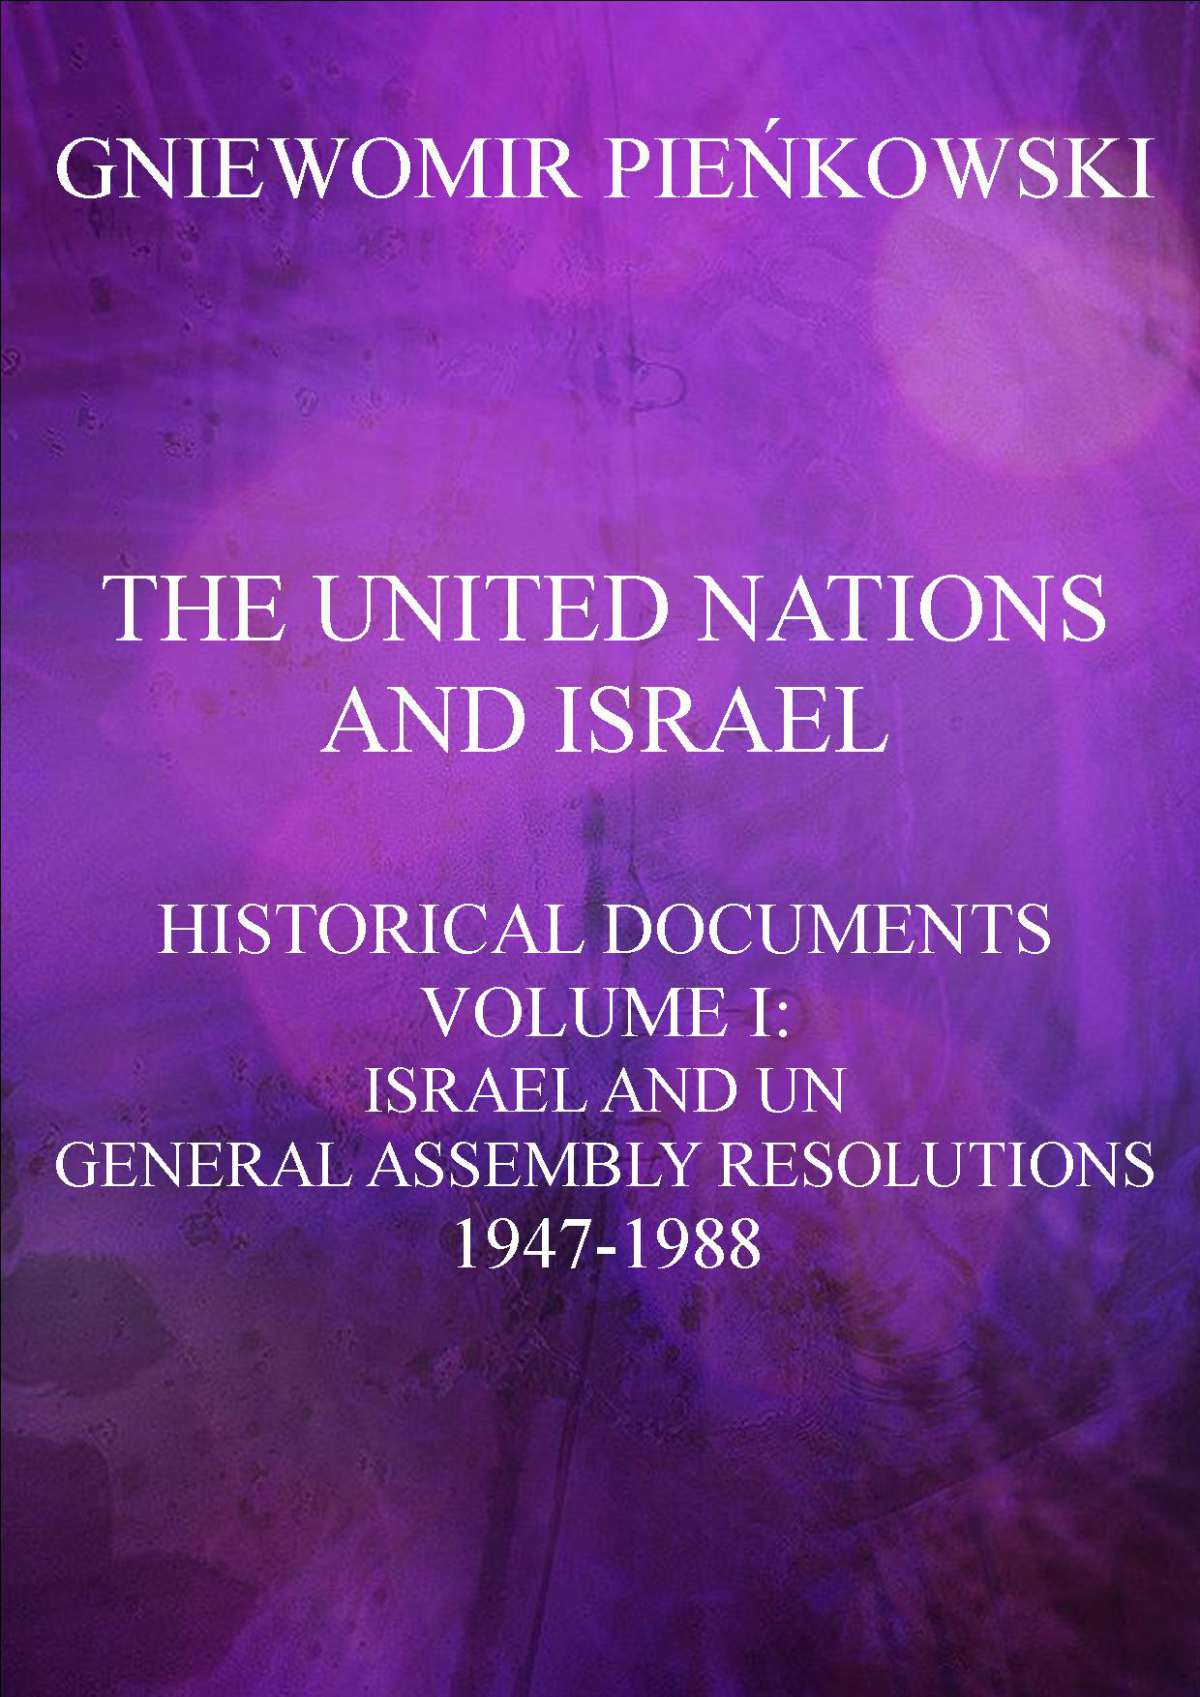 The United Nations and Israel. Historical Documents. Volume I: Israel and UN General Assembly Resolutions 1947-1988 - Ebook (Książka PDF) do pobrania w formacie PDF